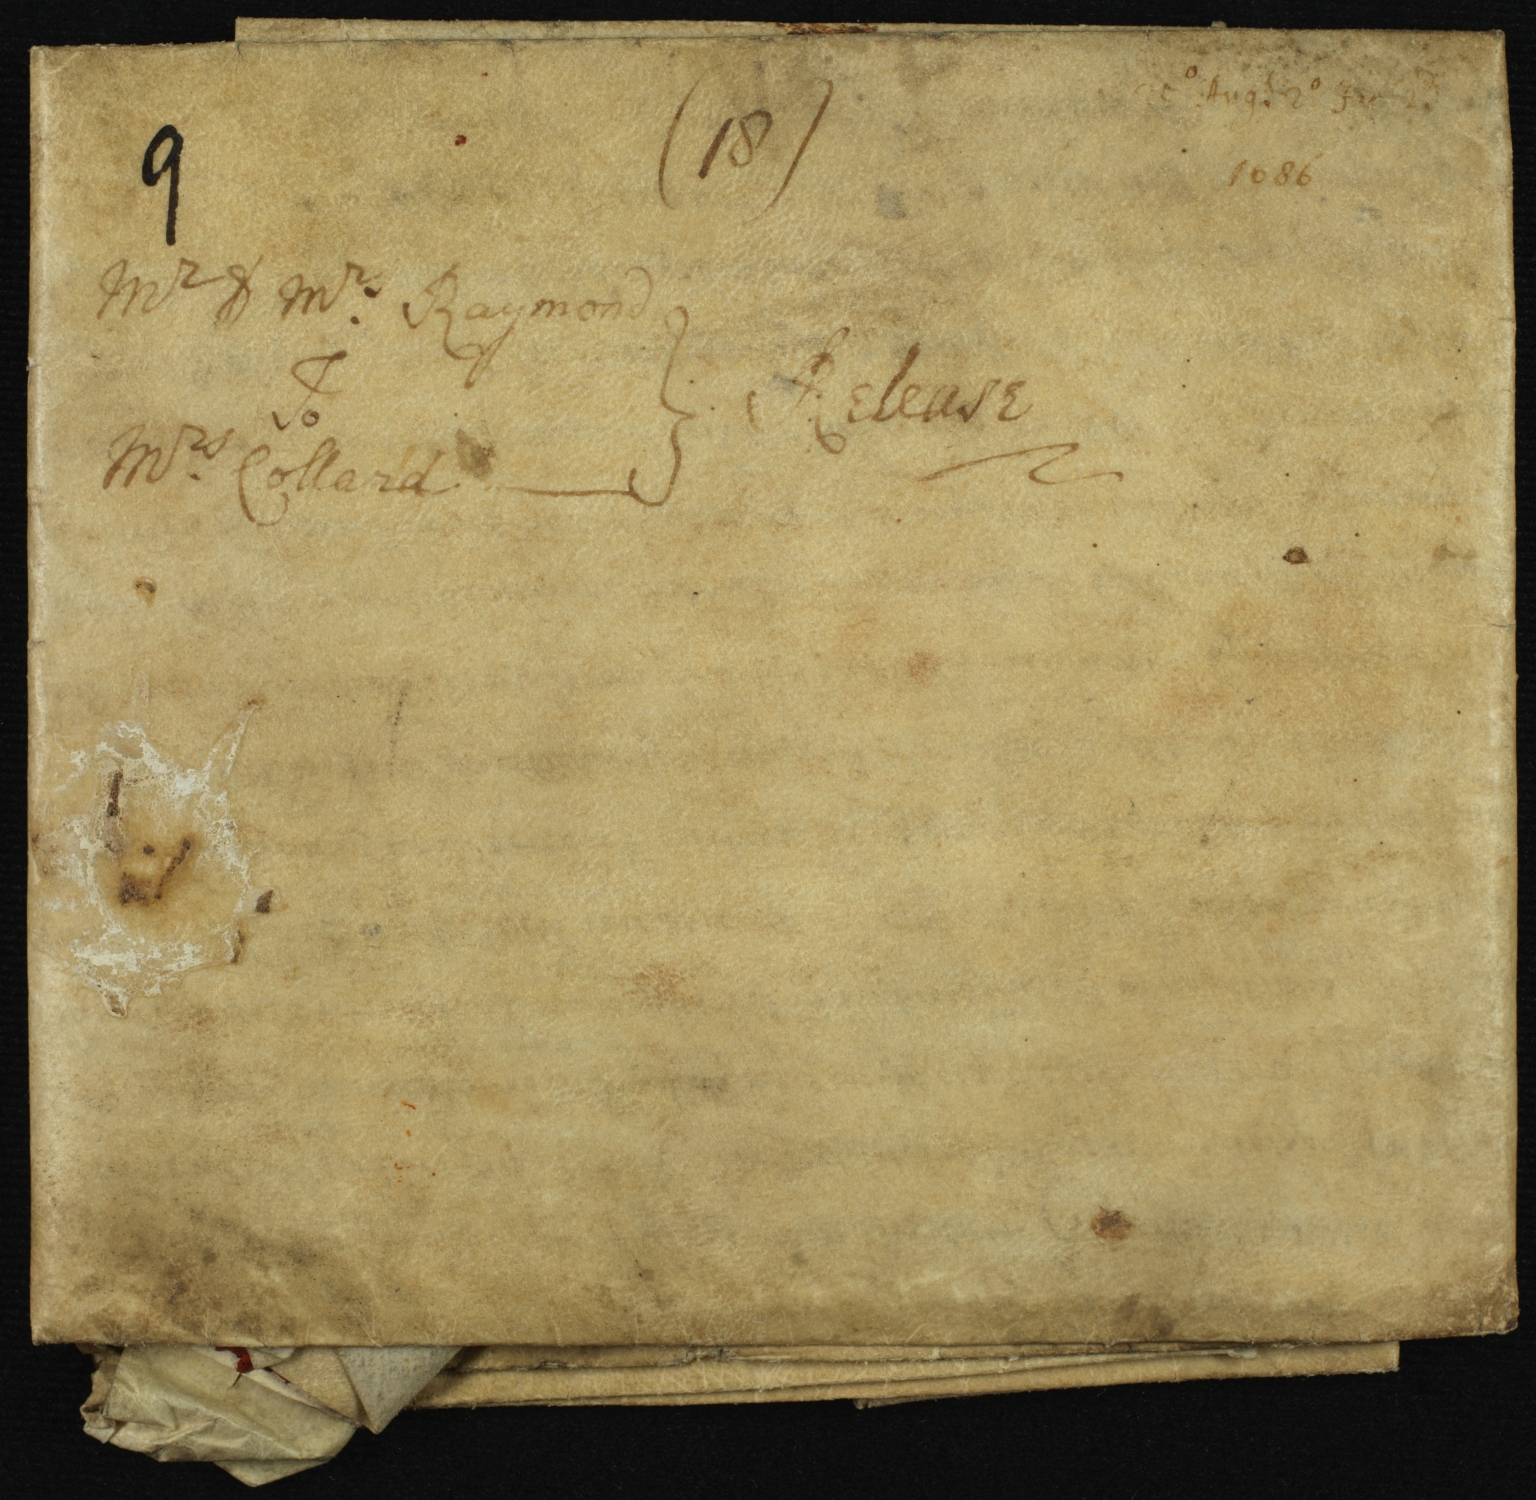 Mortgage, 1686, of Land in Essex to Dorothy Collard of Barnstone, folded, front